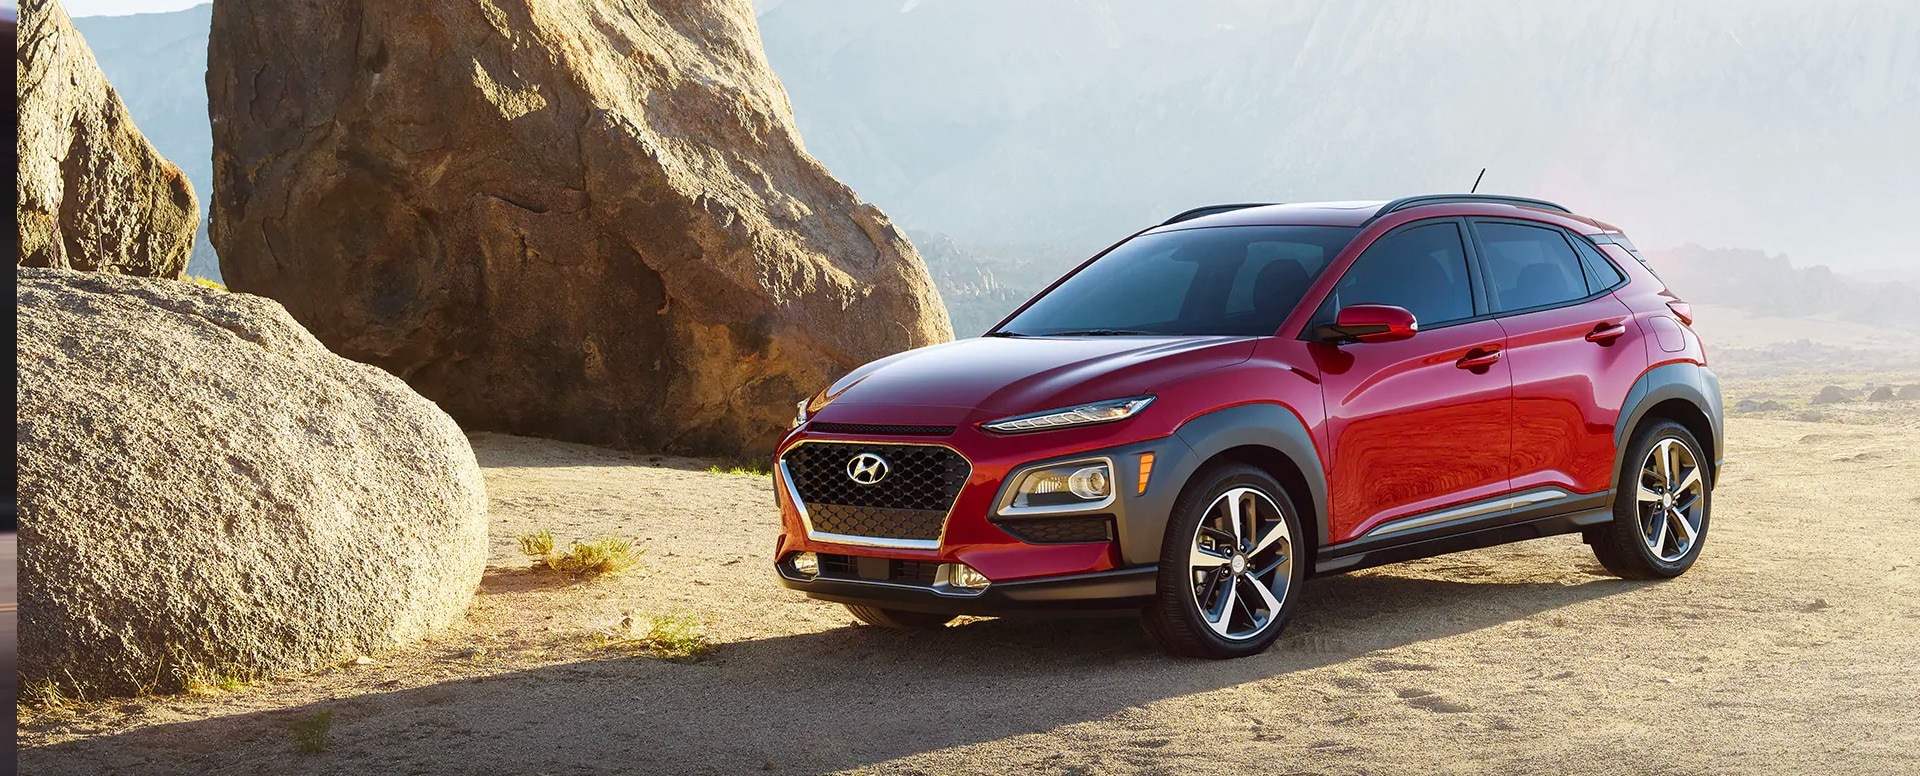 2018 Hyundai Kona in Chicago IL